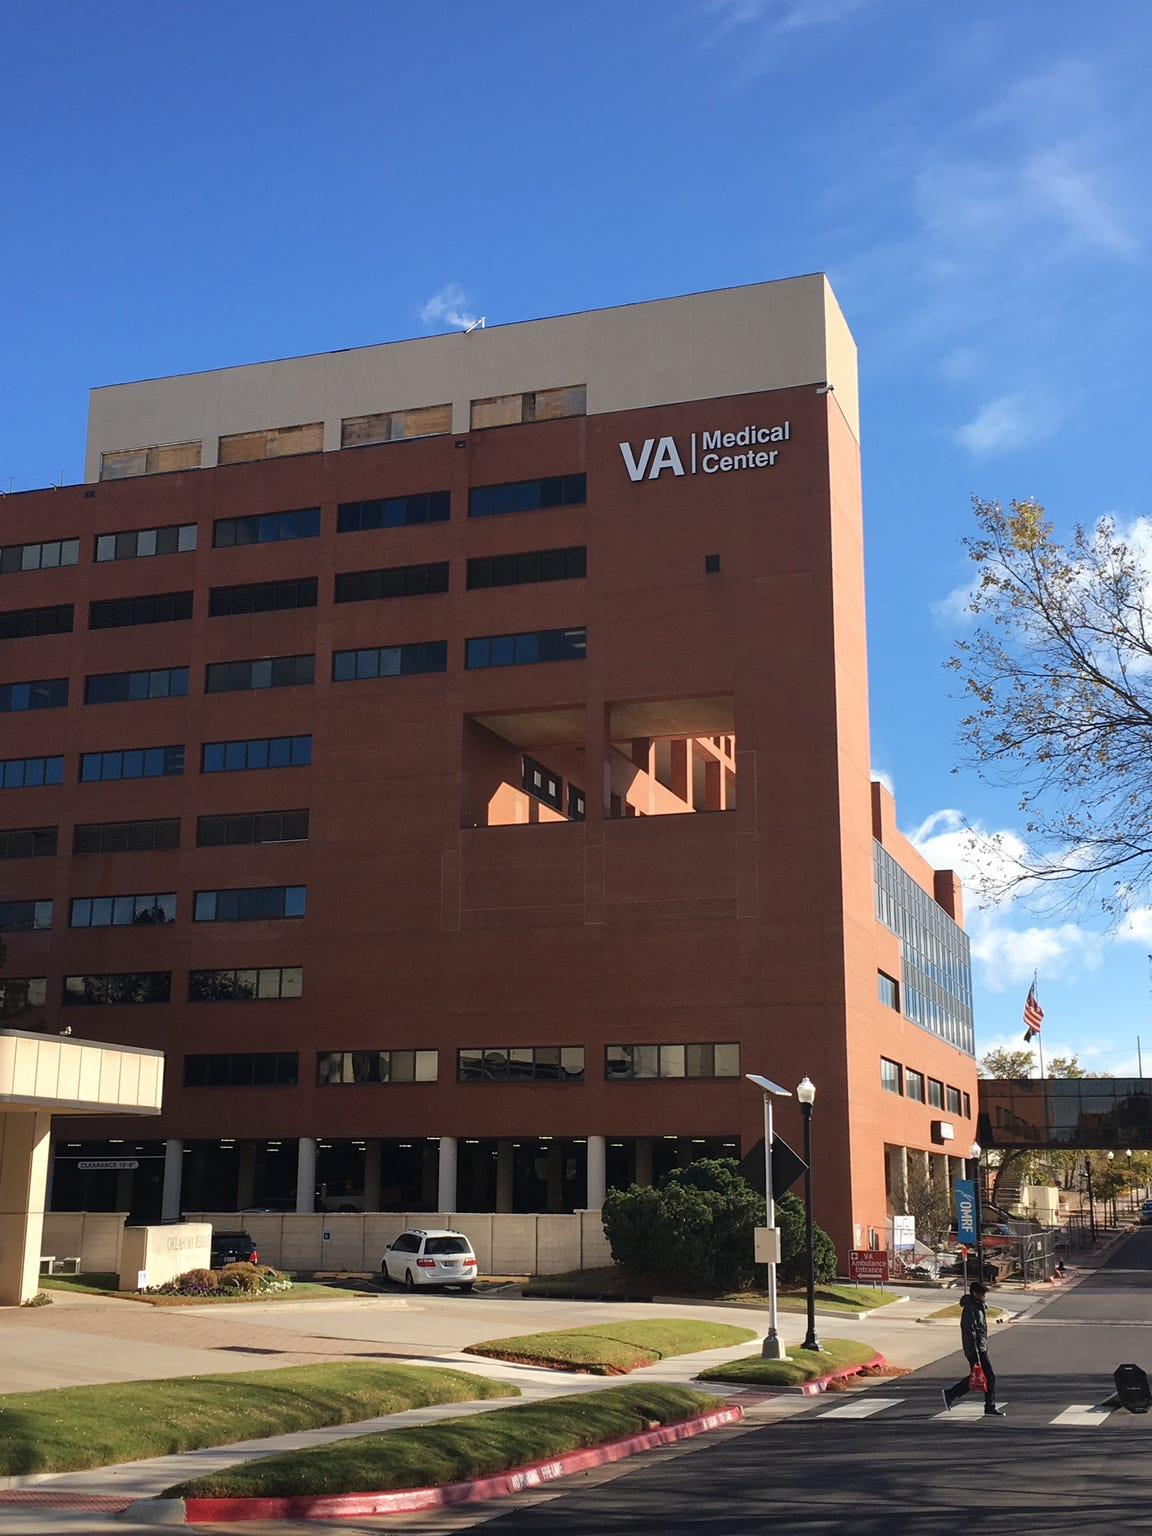 VA officials launched investigations of five patient